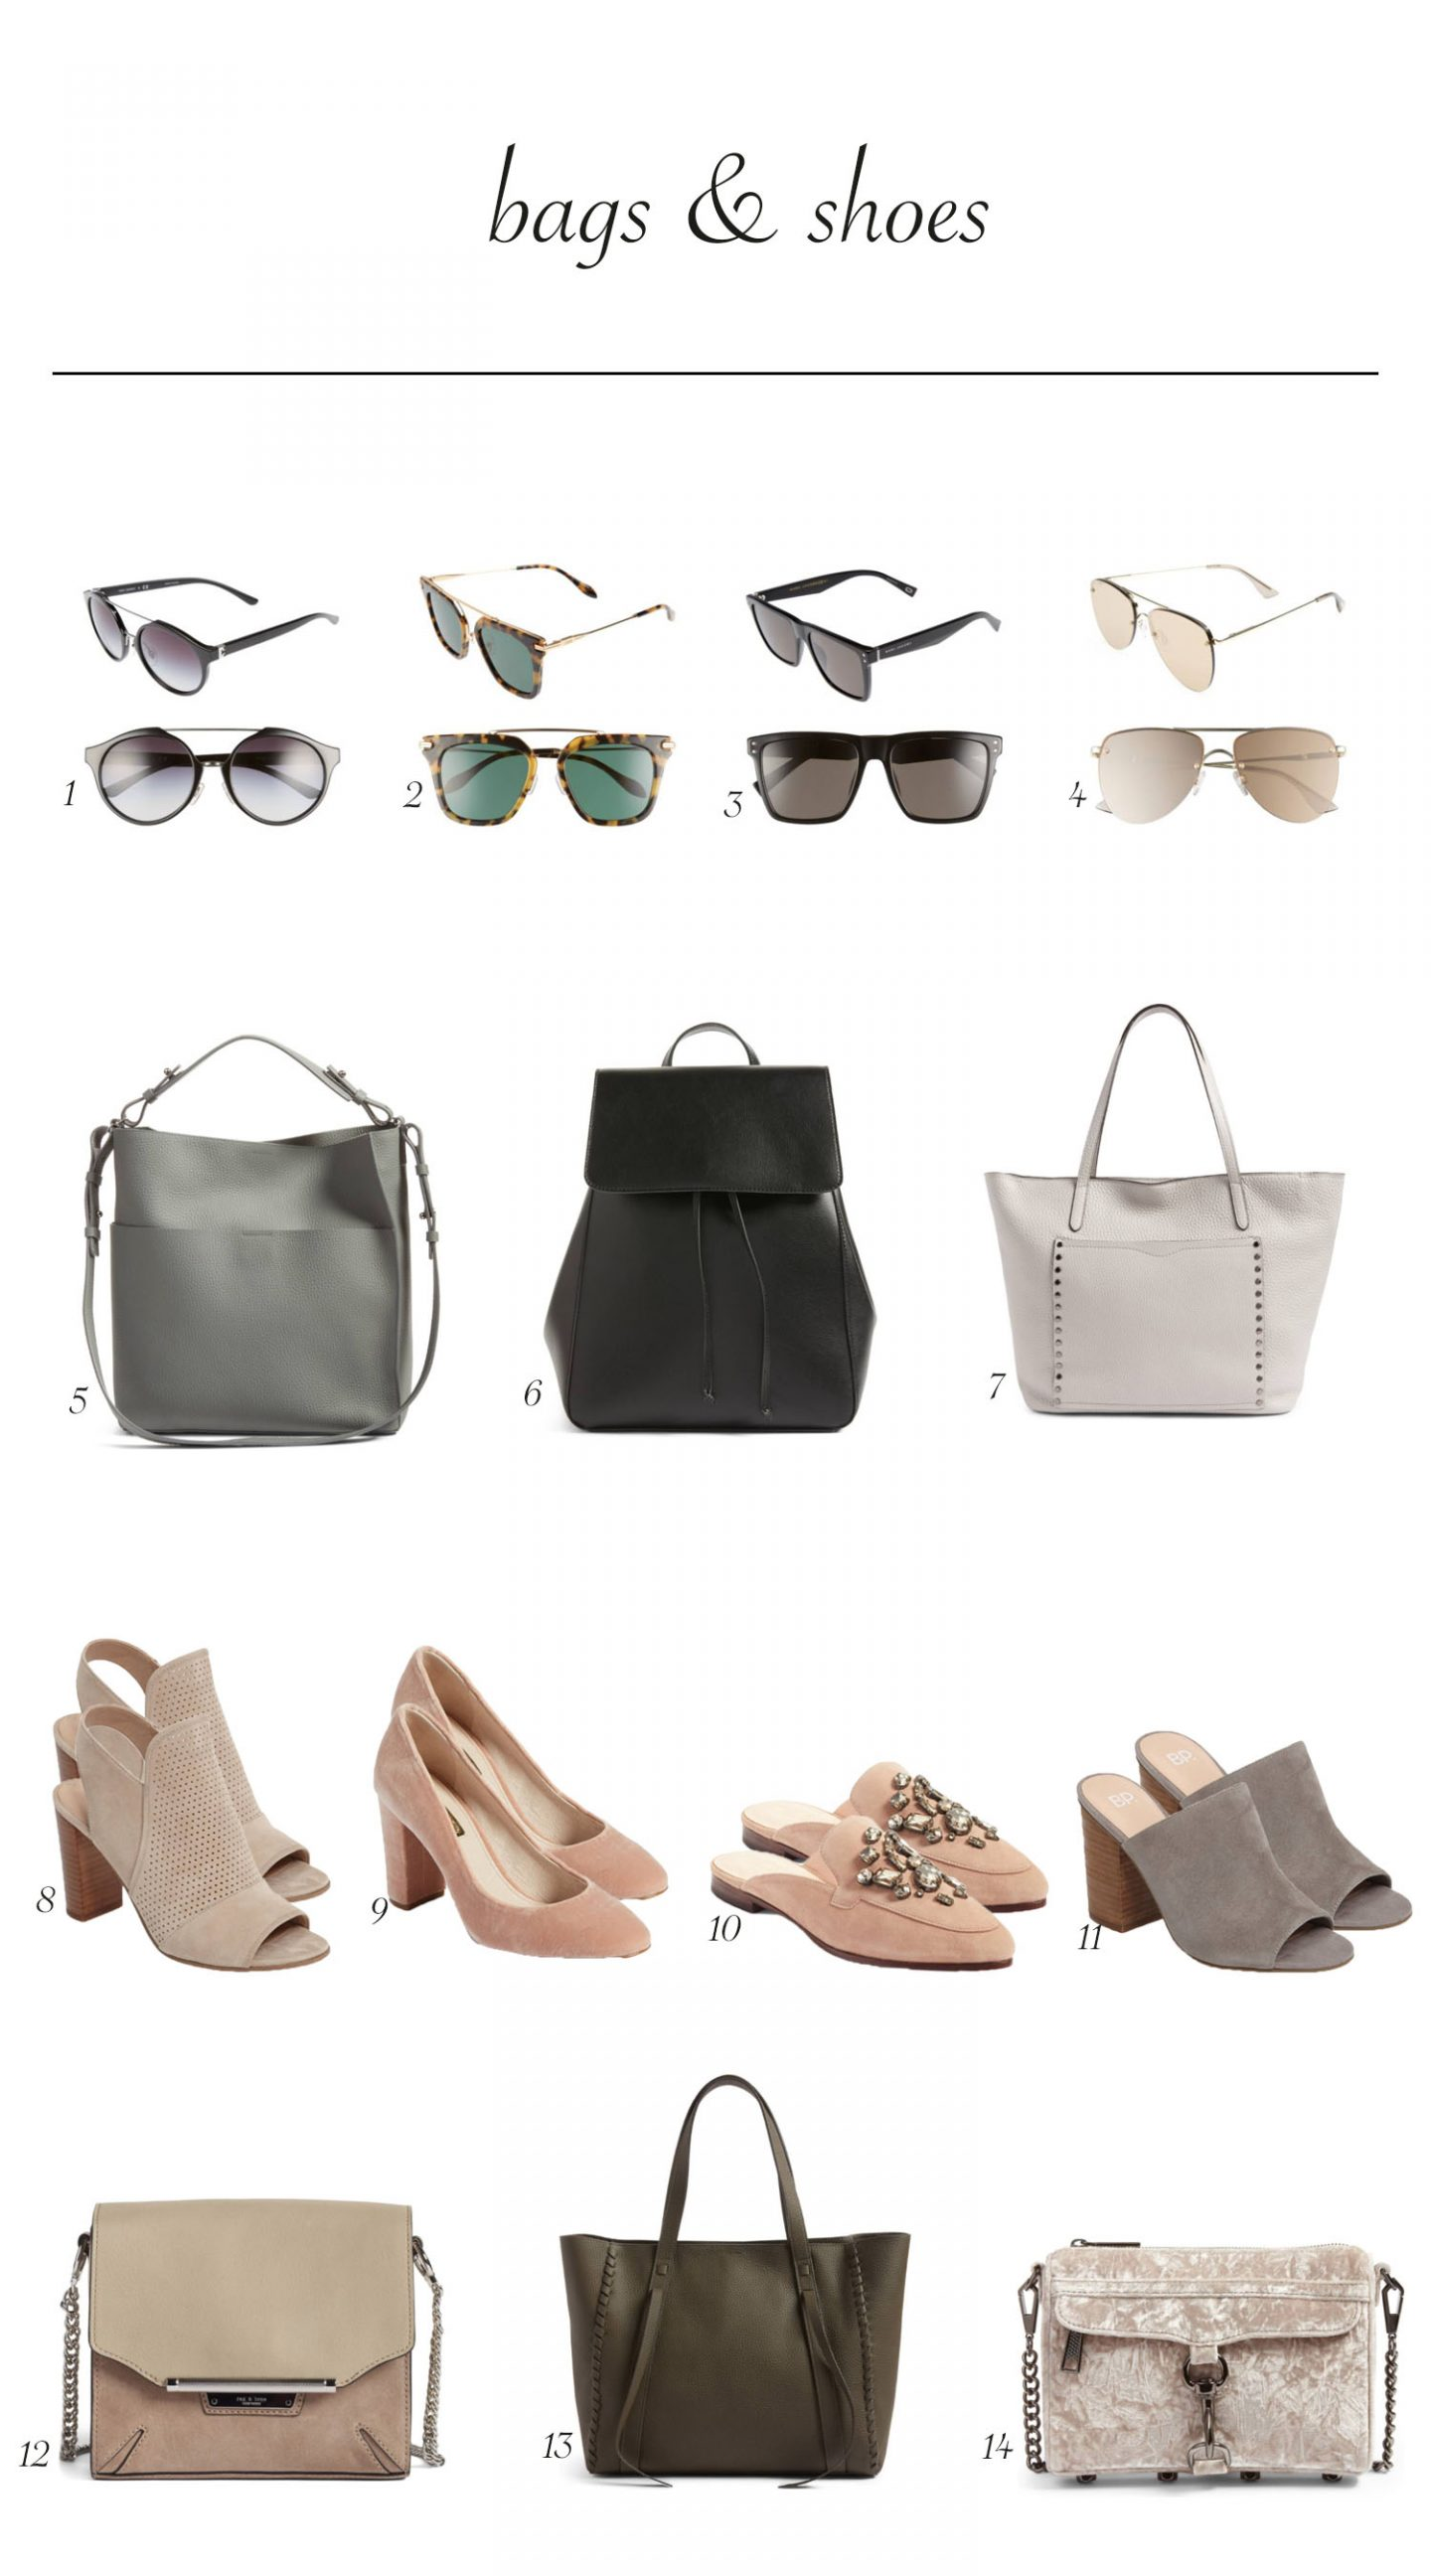 nordstrom sale, sunglasses, handbags, heels